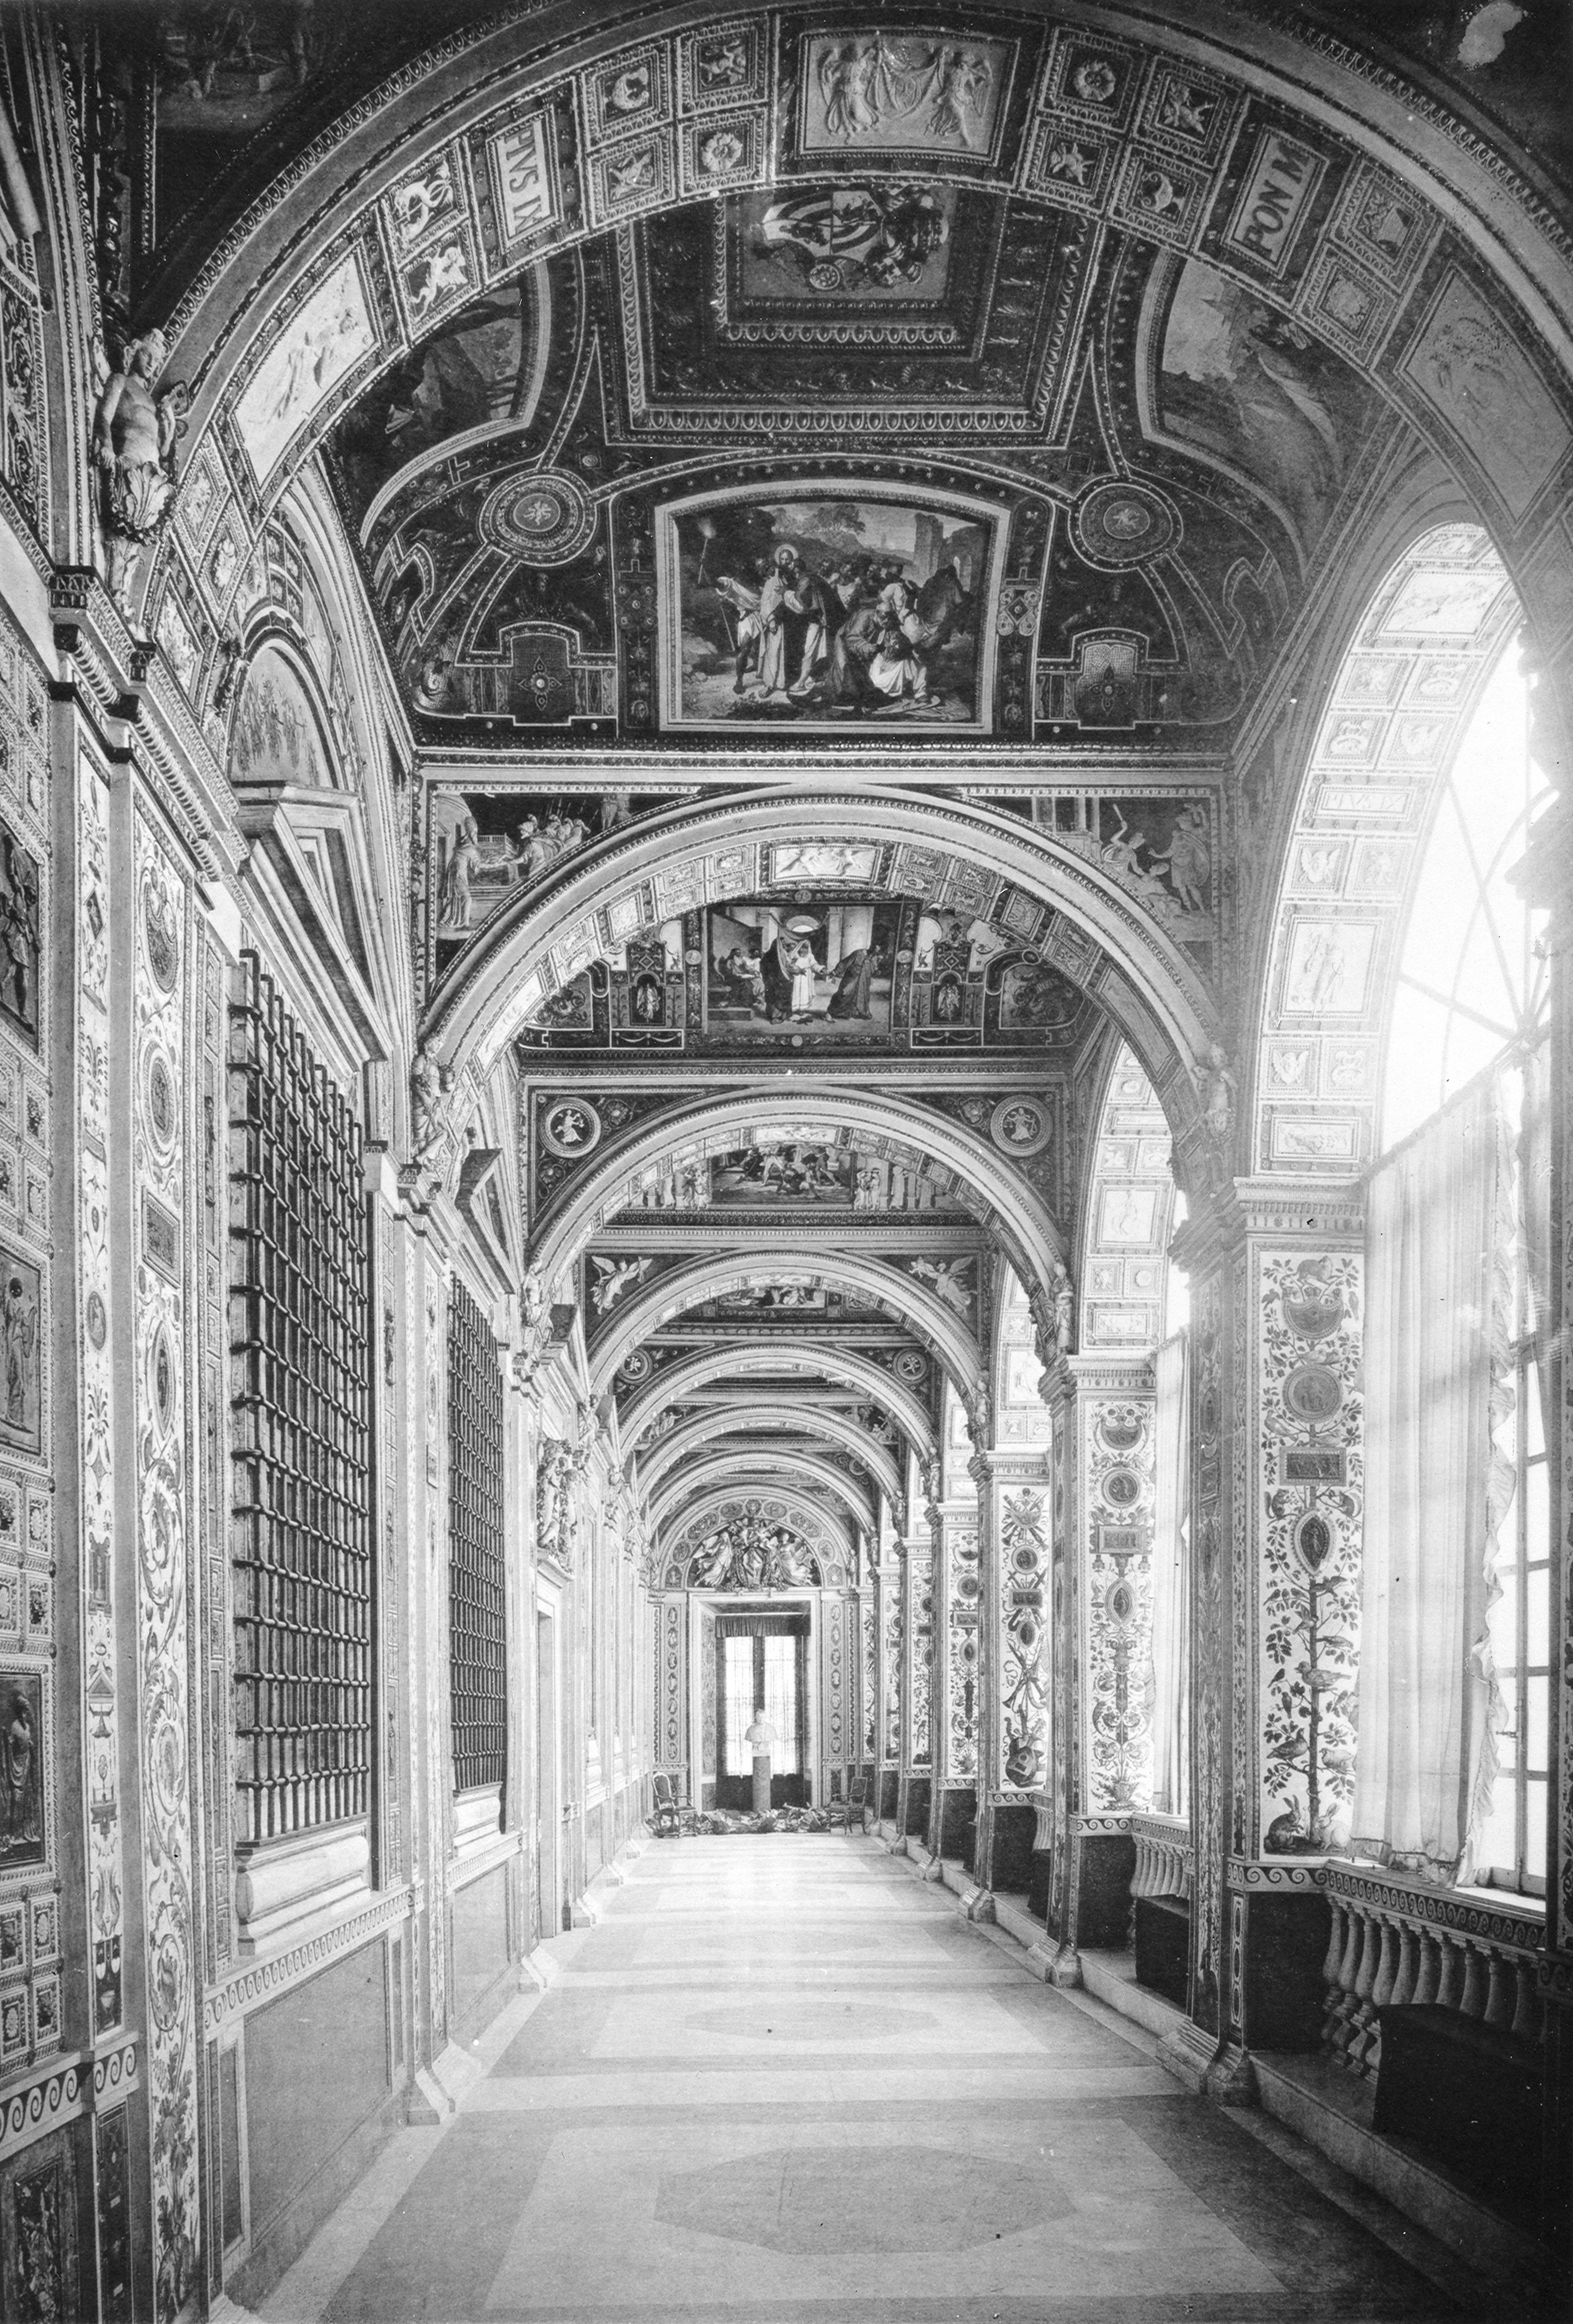 Raphael's Loggia in the Vatican.